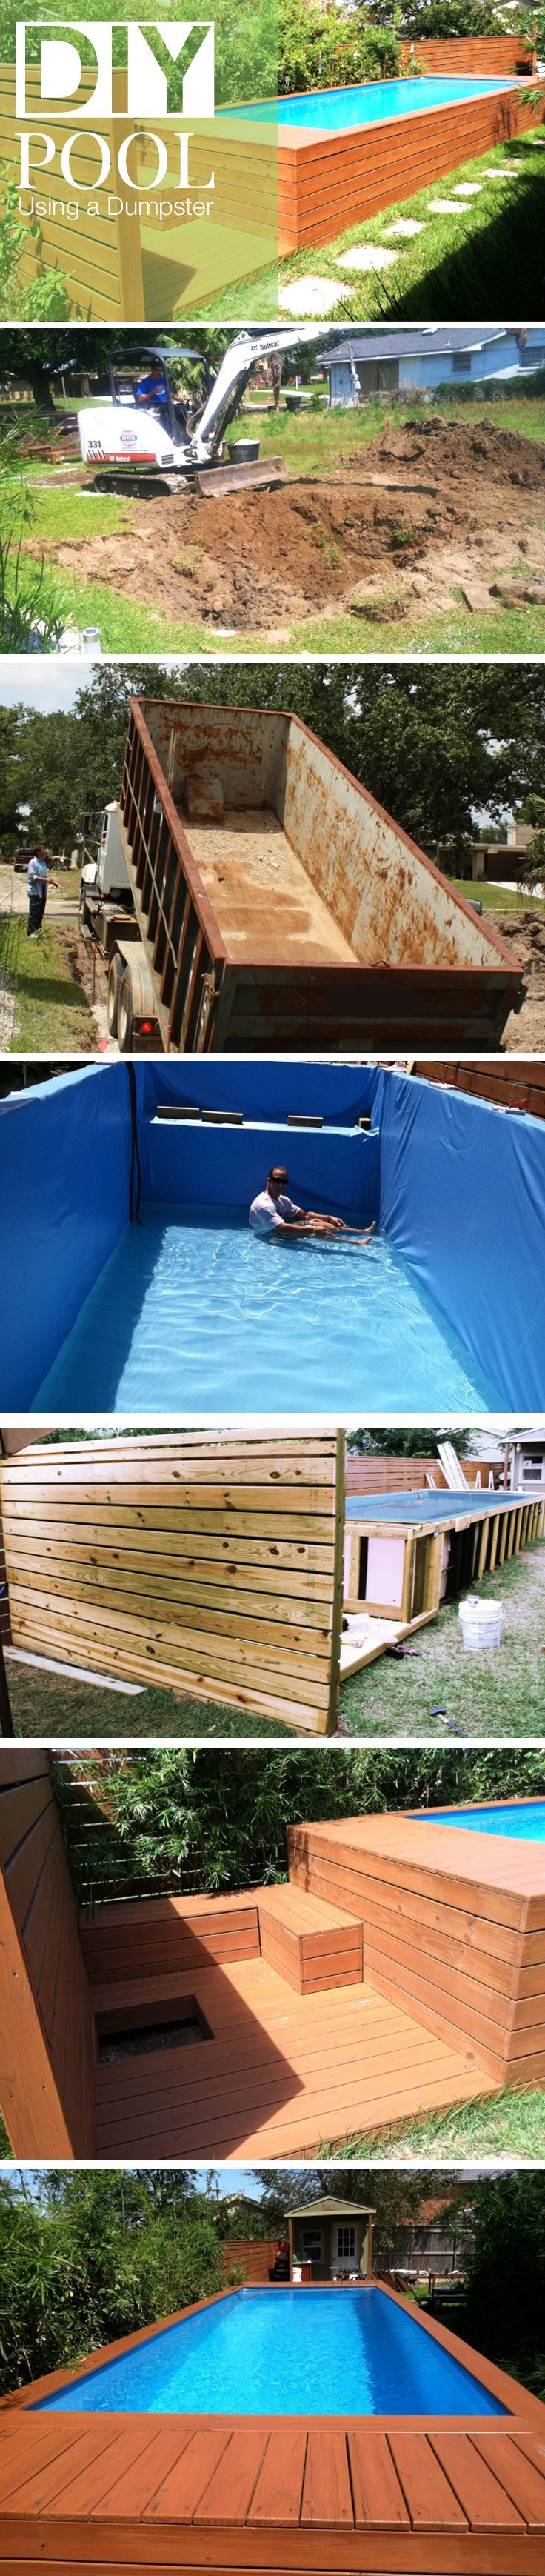 17 Best Images About Pool On Pinterest Portable Pools Above Ground Pool Landscaping And